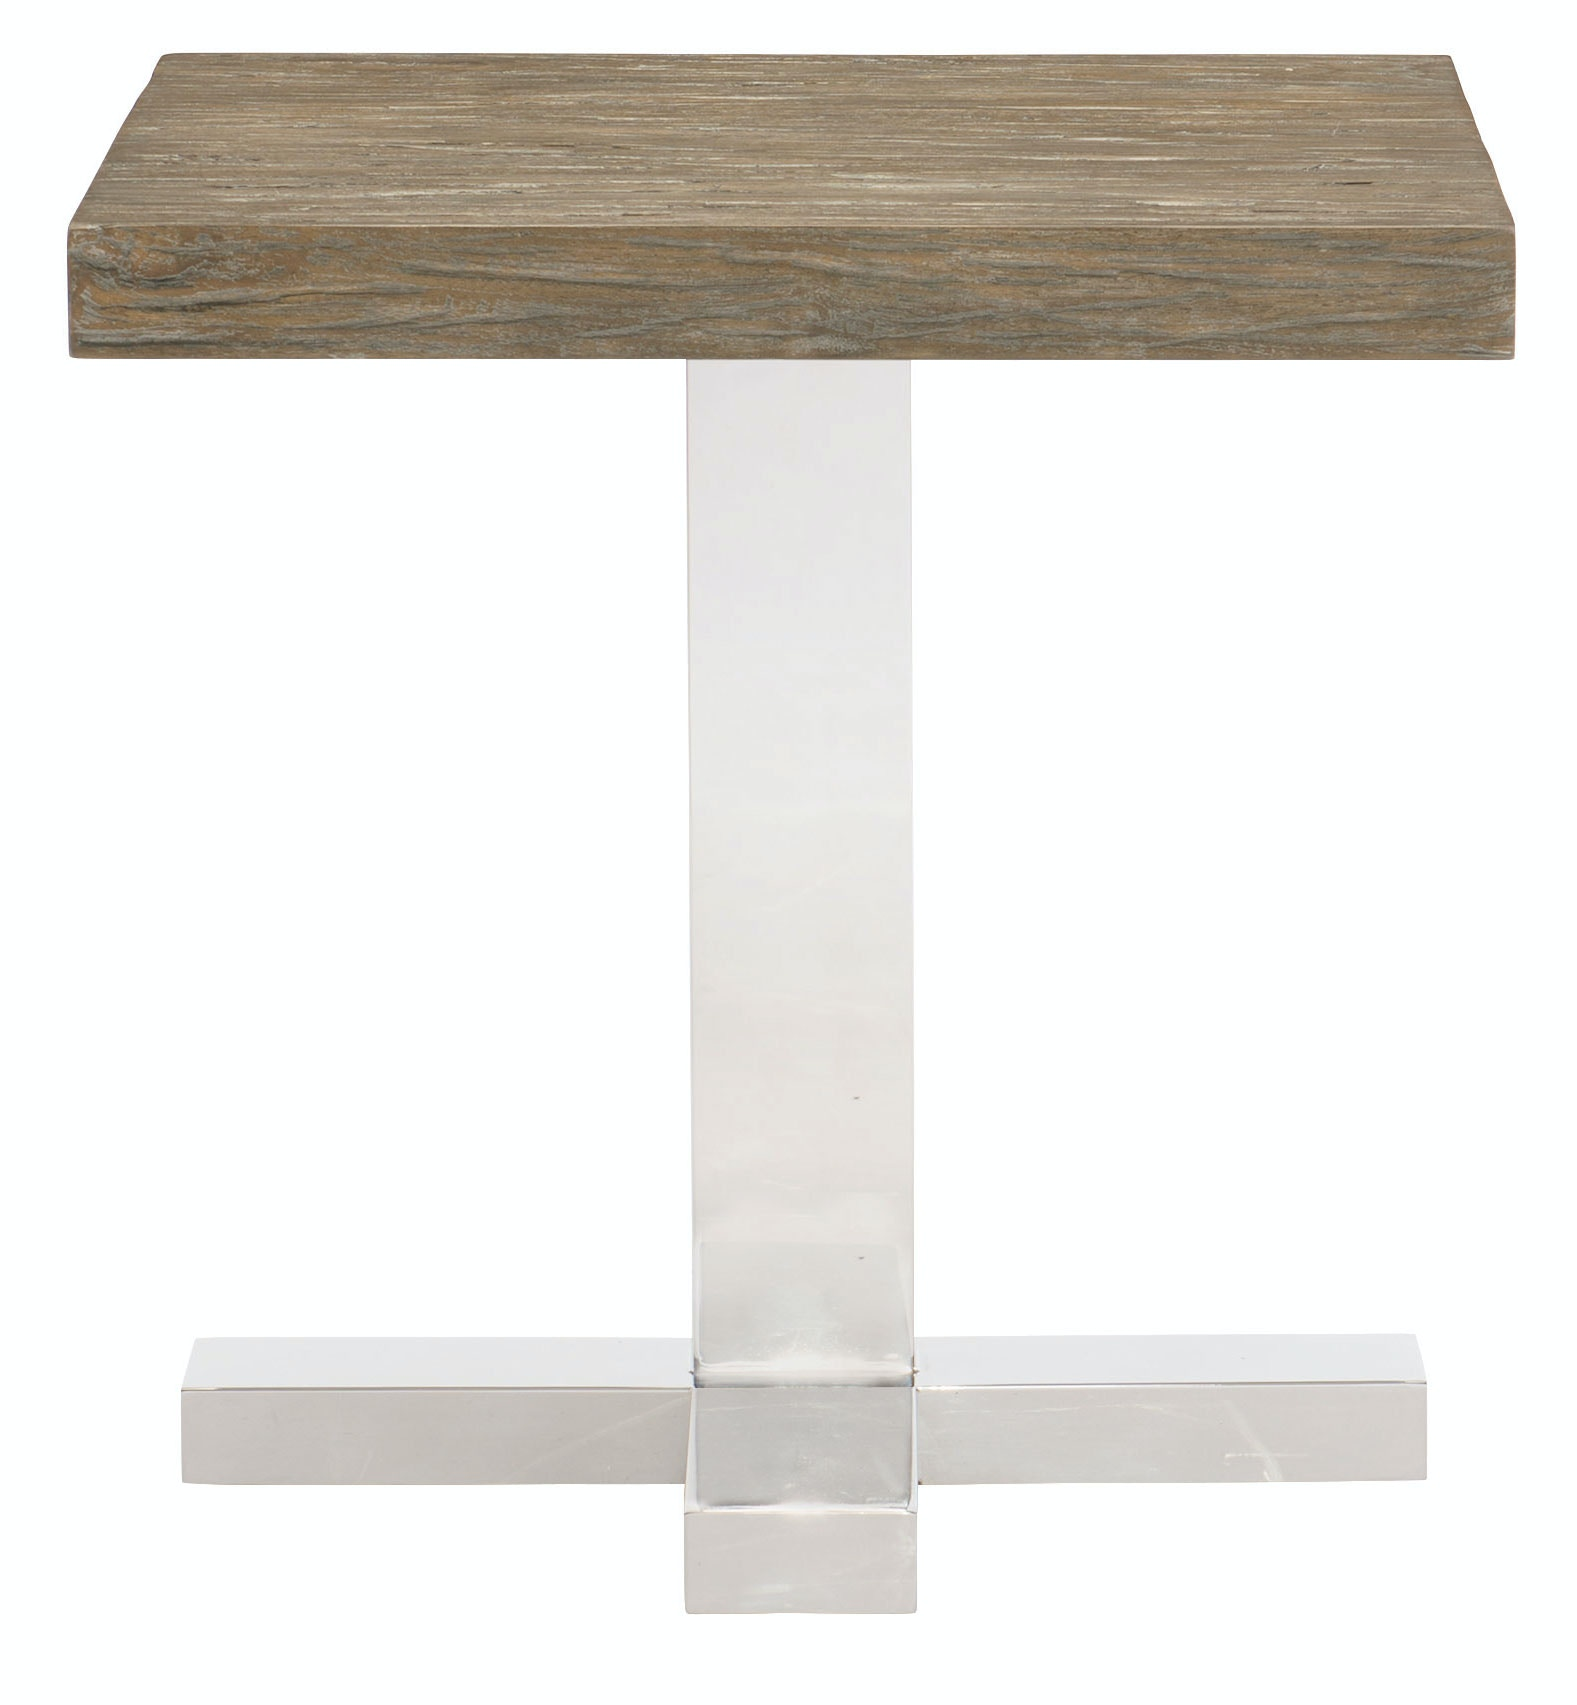 Bernhardt Furniture Pelham End Table Wood Top And Base 459 122T, 459 122